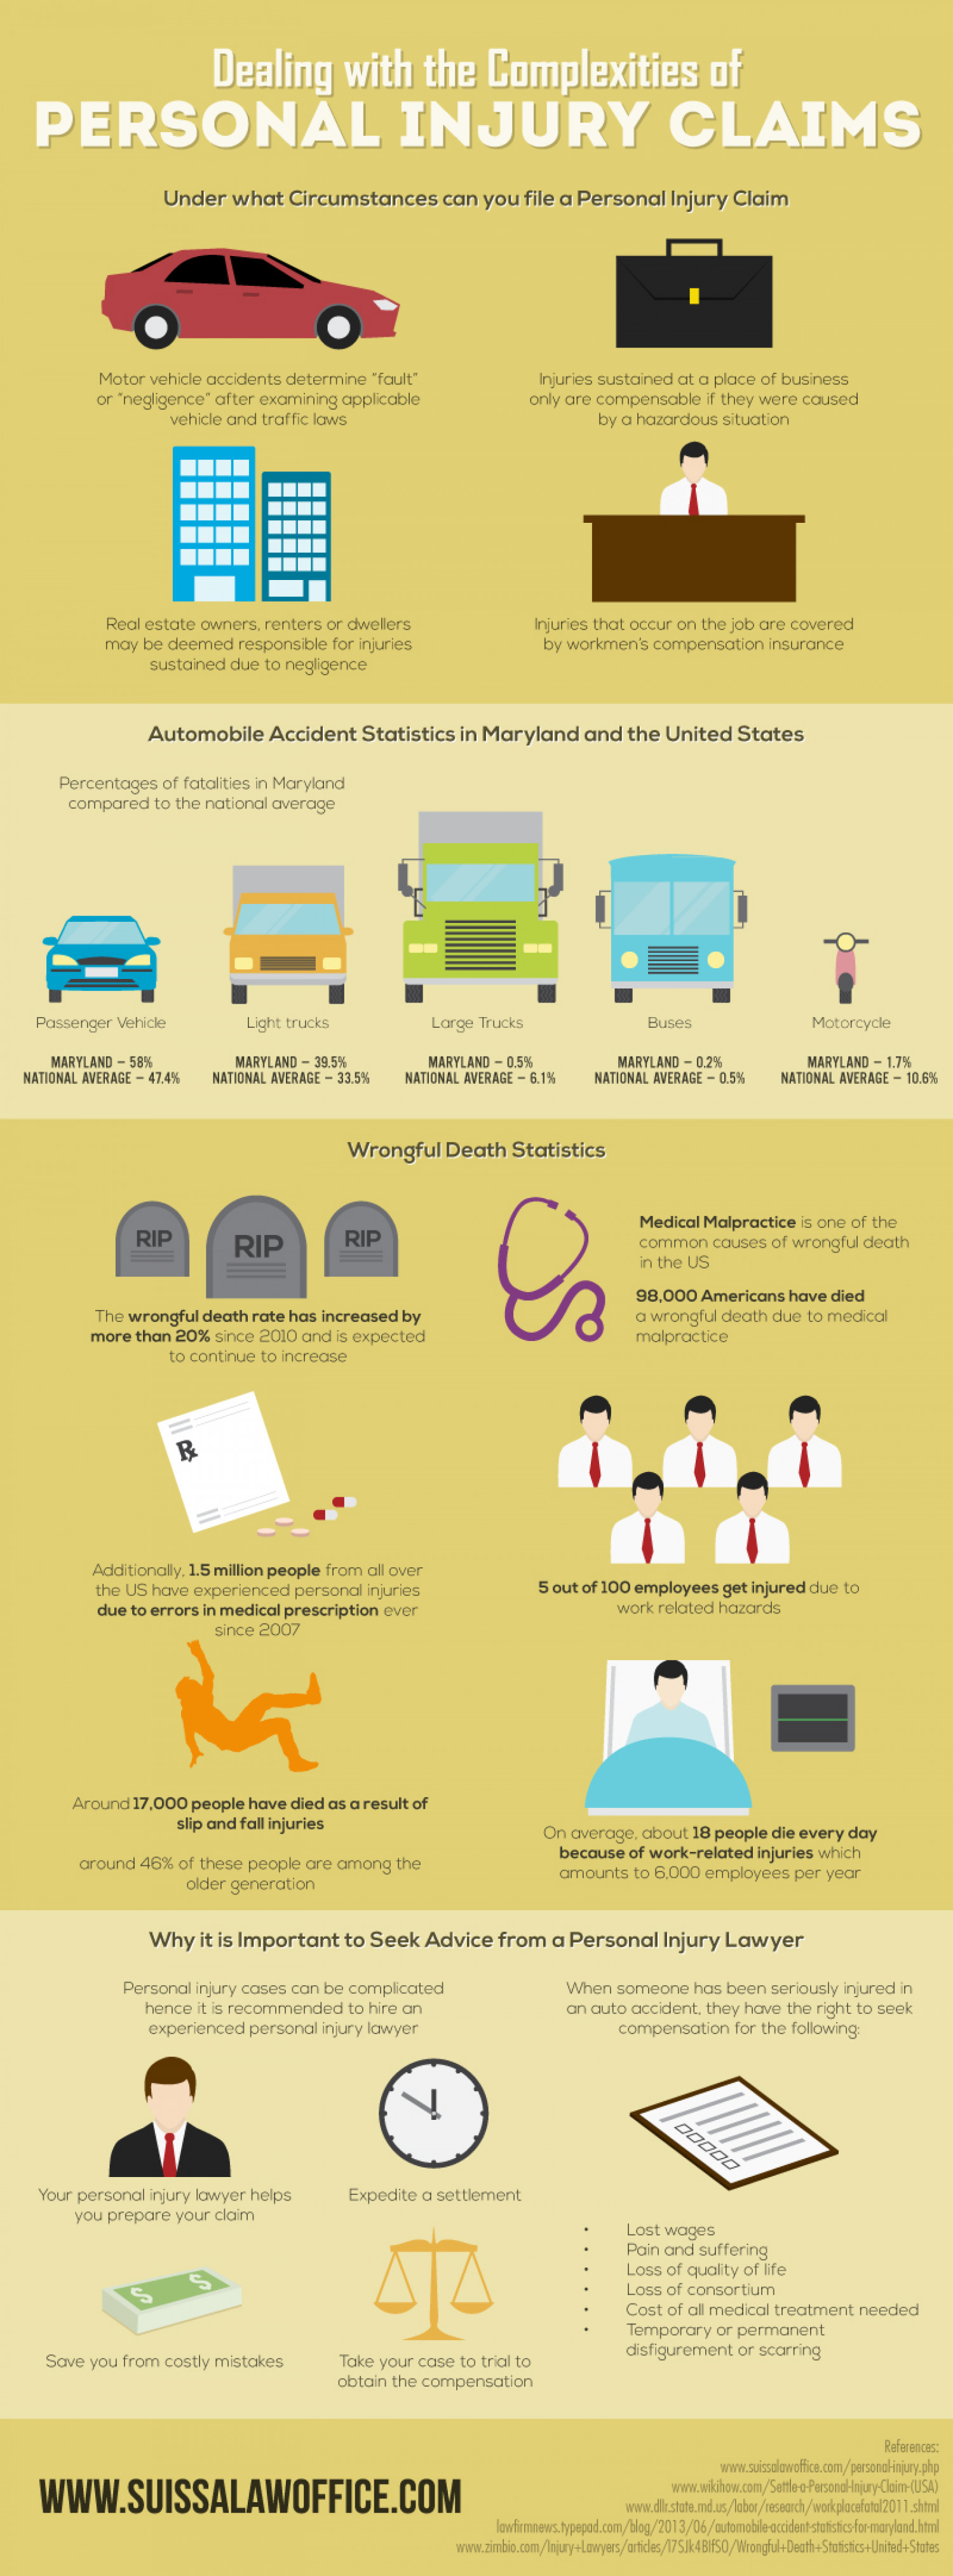 Dealing With The Complexities of Personal Injury Claims Infographic